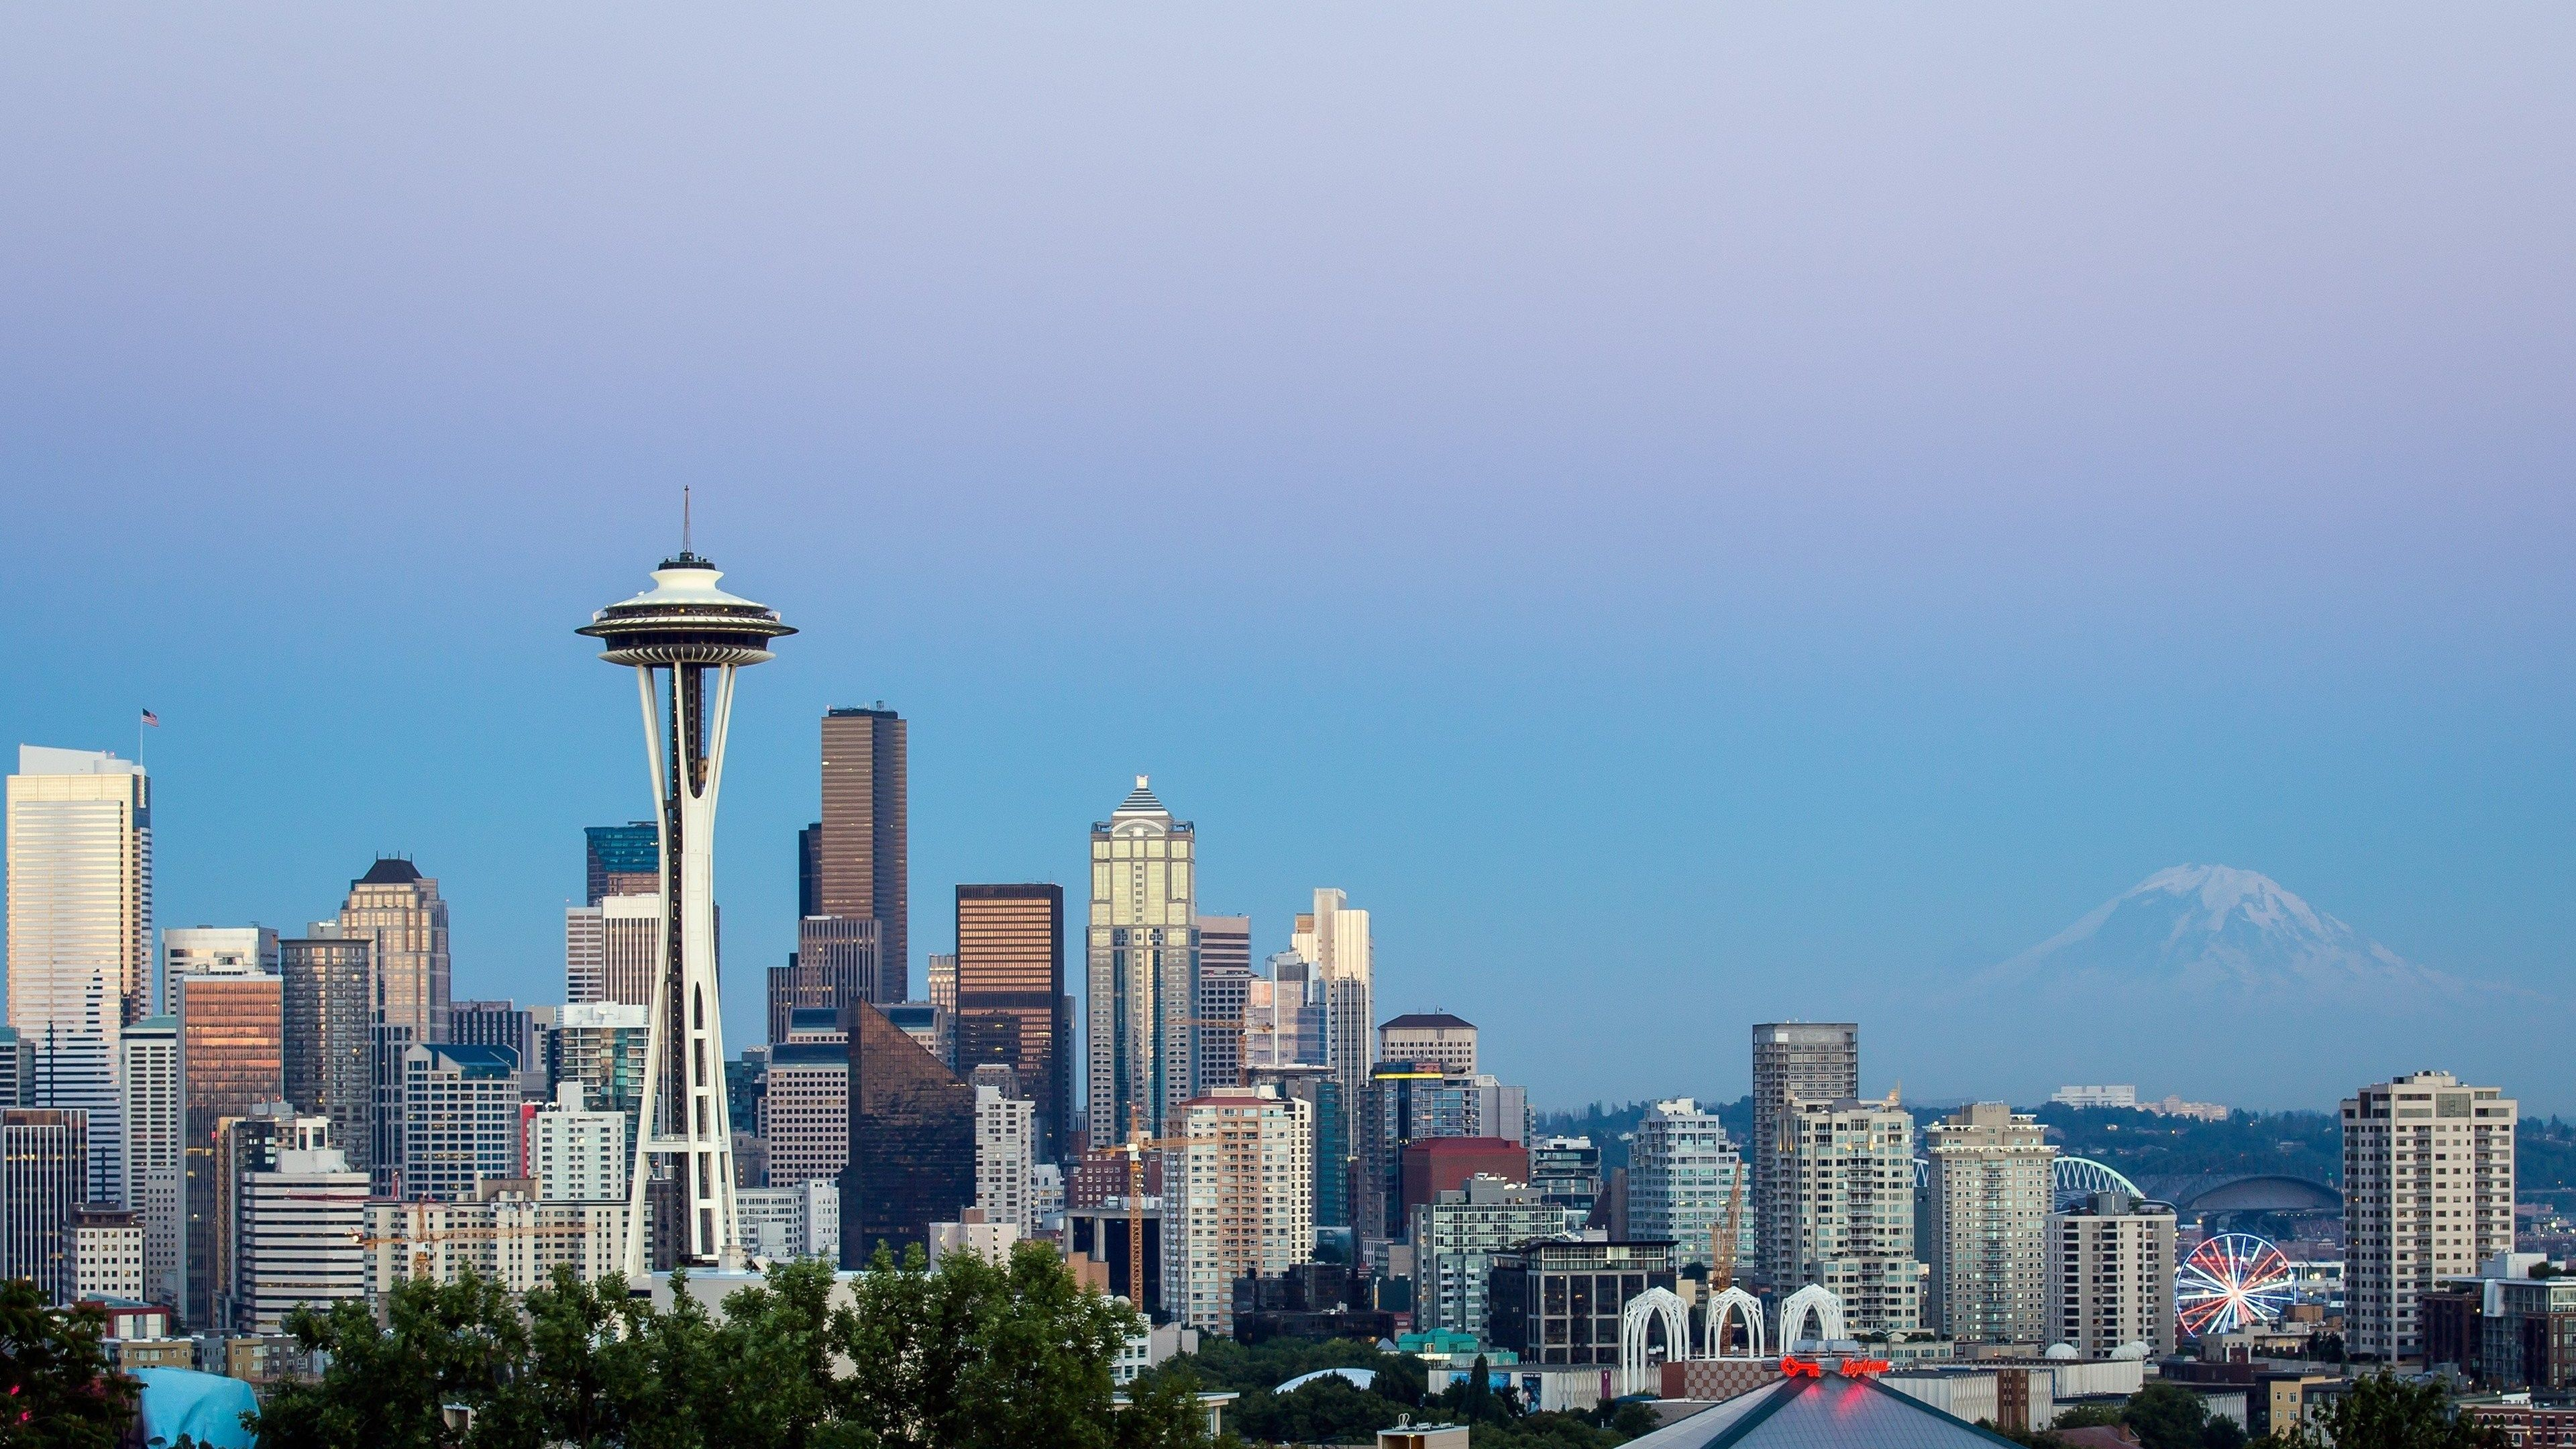 3840x2160 px High Resolution Wallpapers seattle wallpaper by Rollo